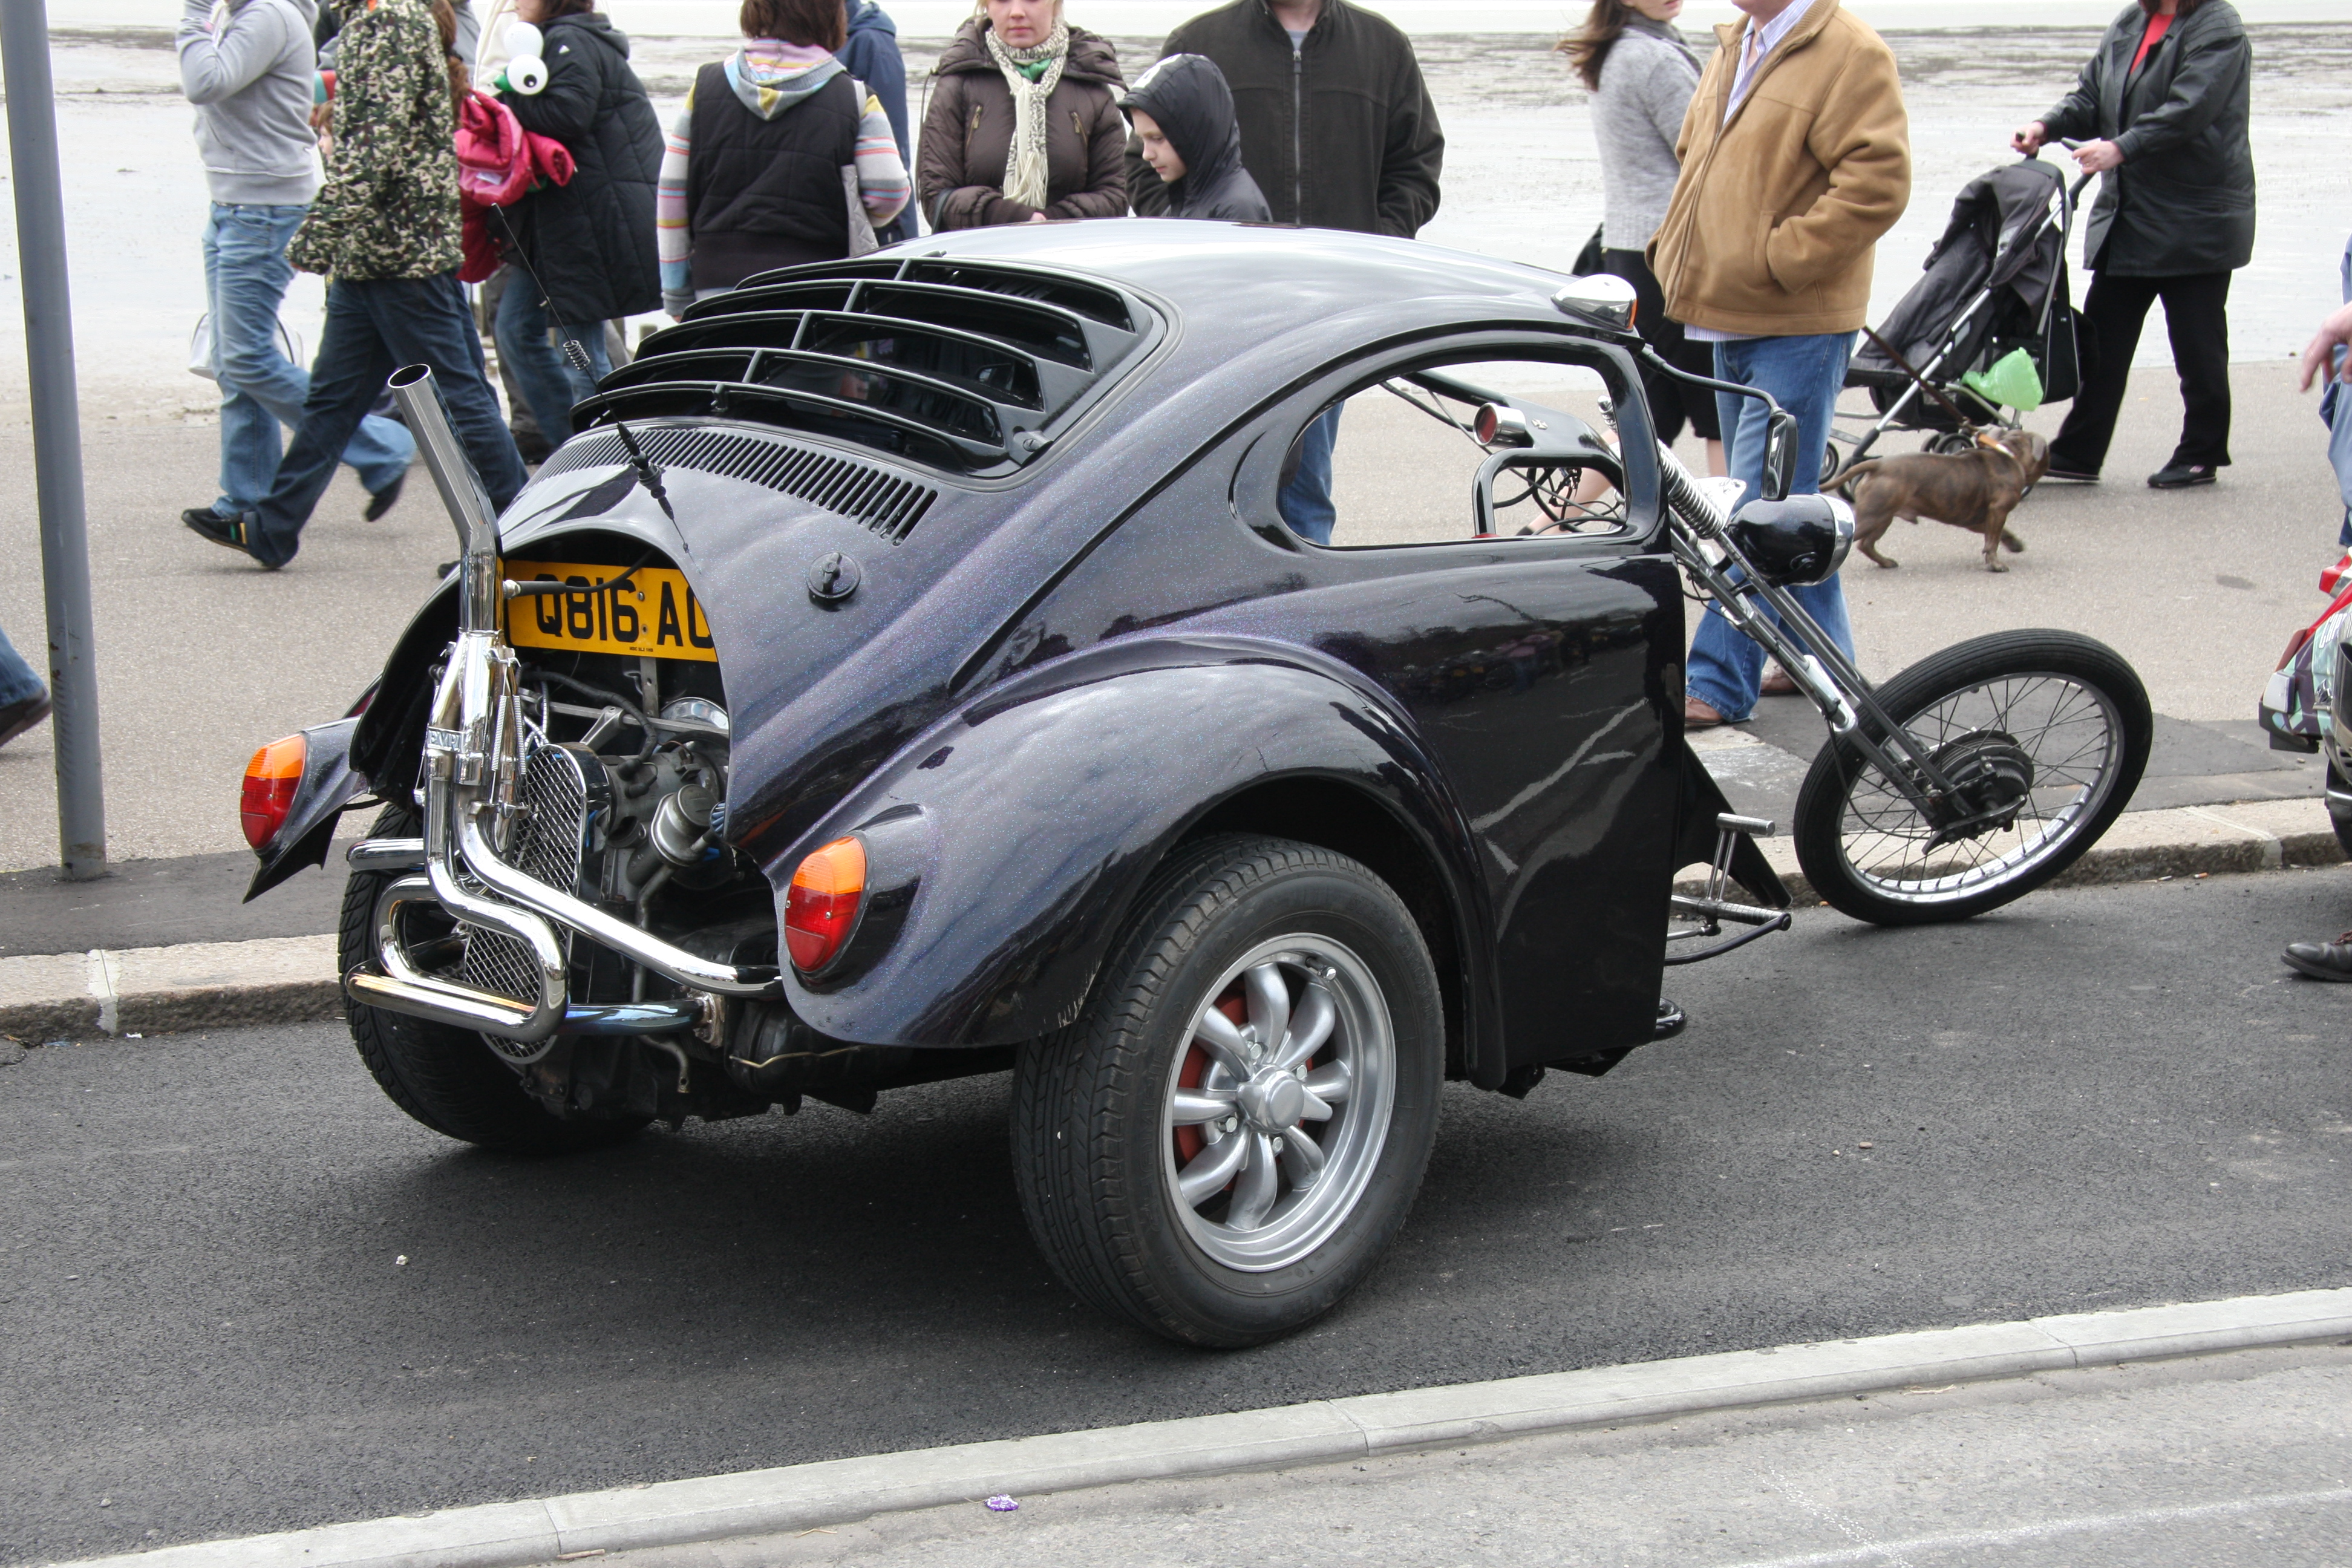 Description VW Beetle trike - Flickr - exfordy (1).jpg